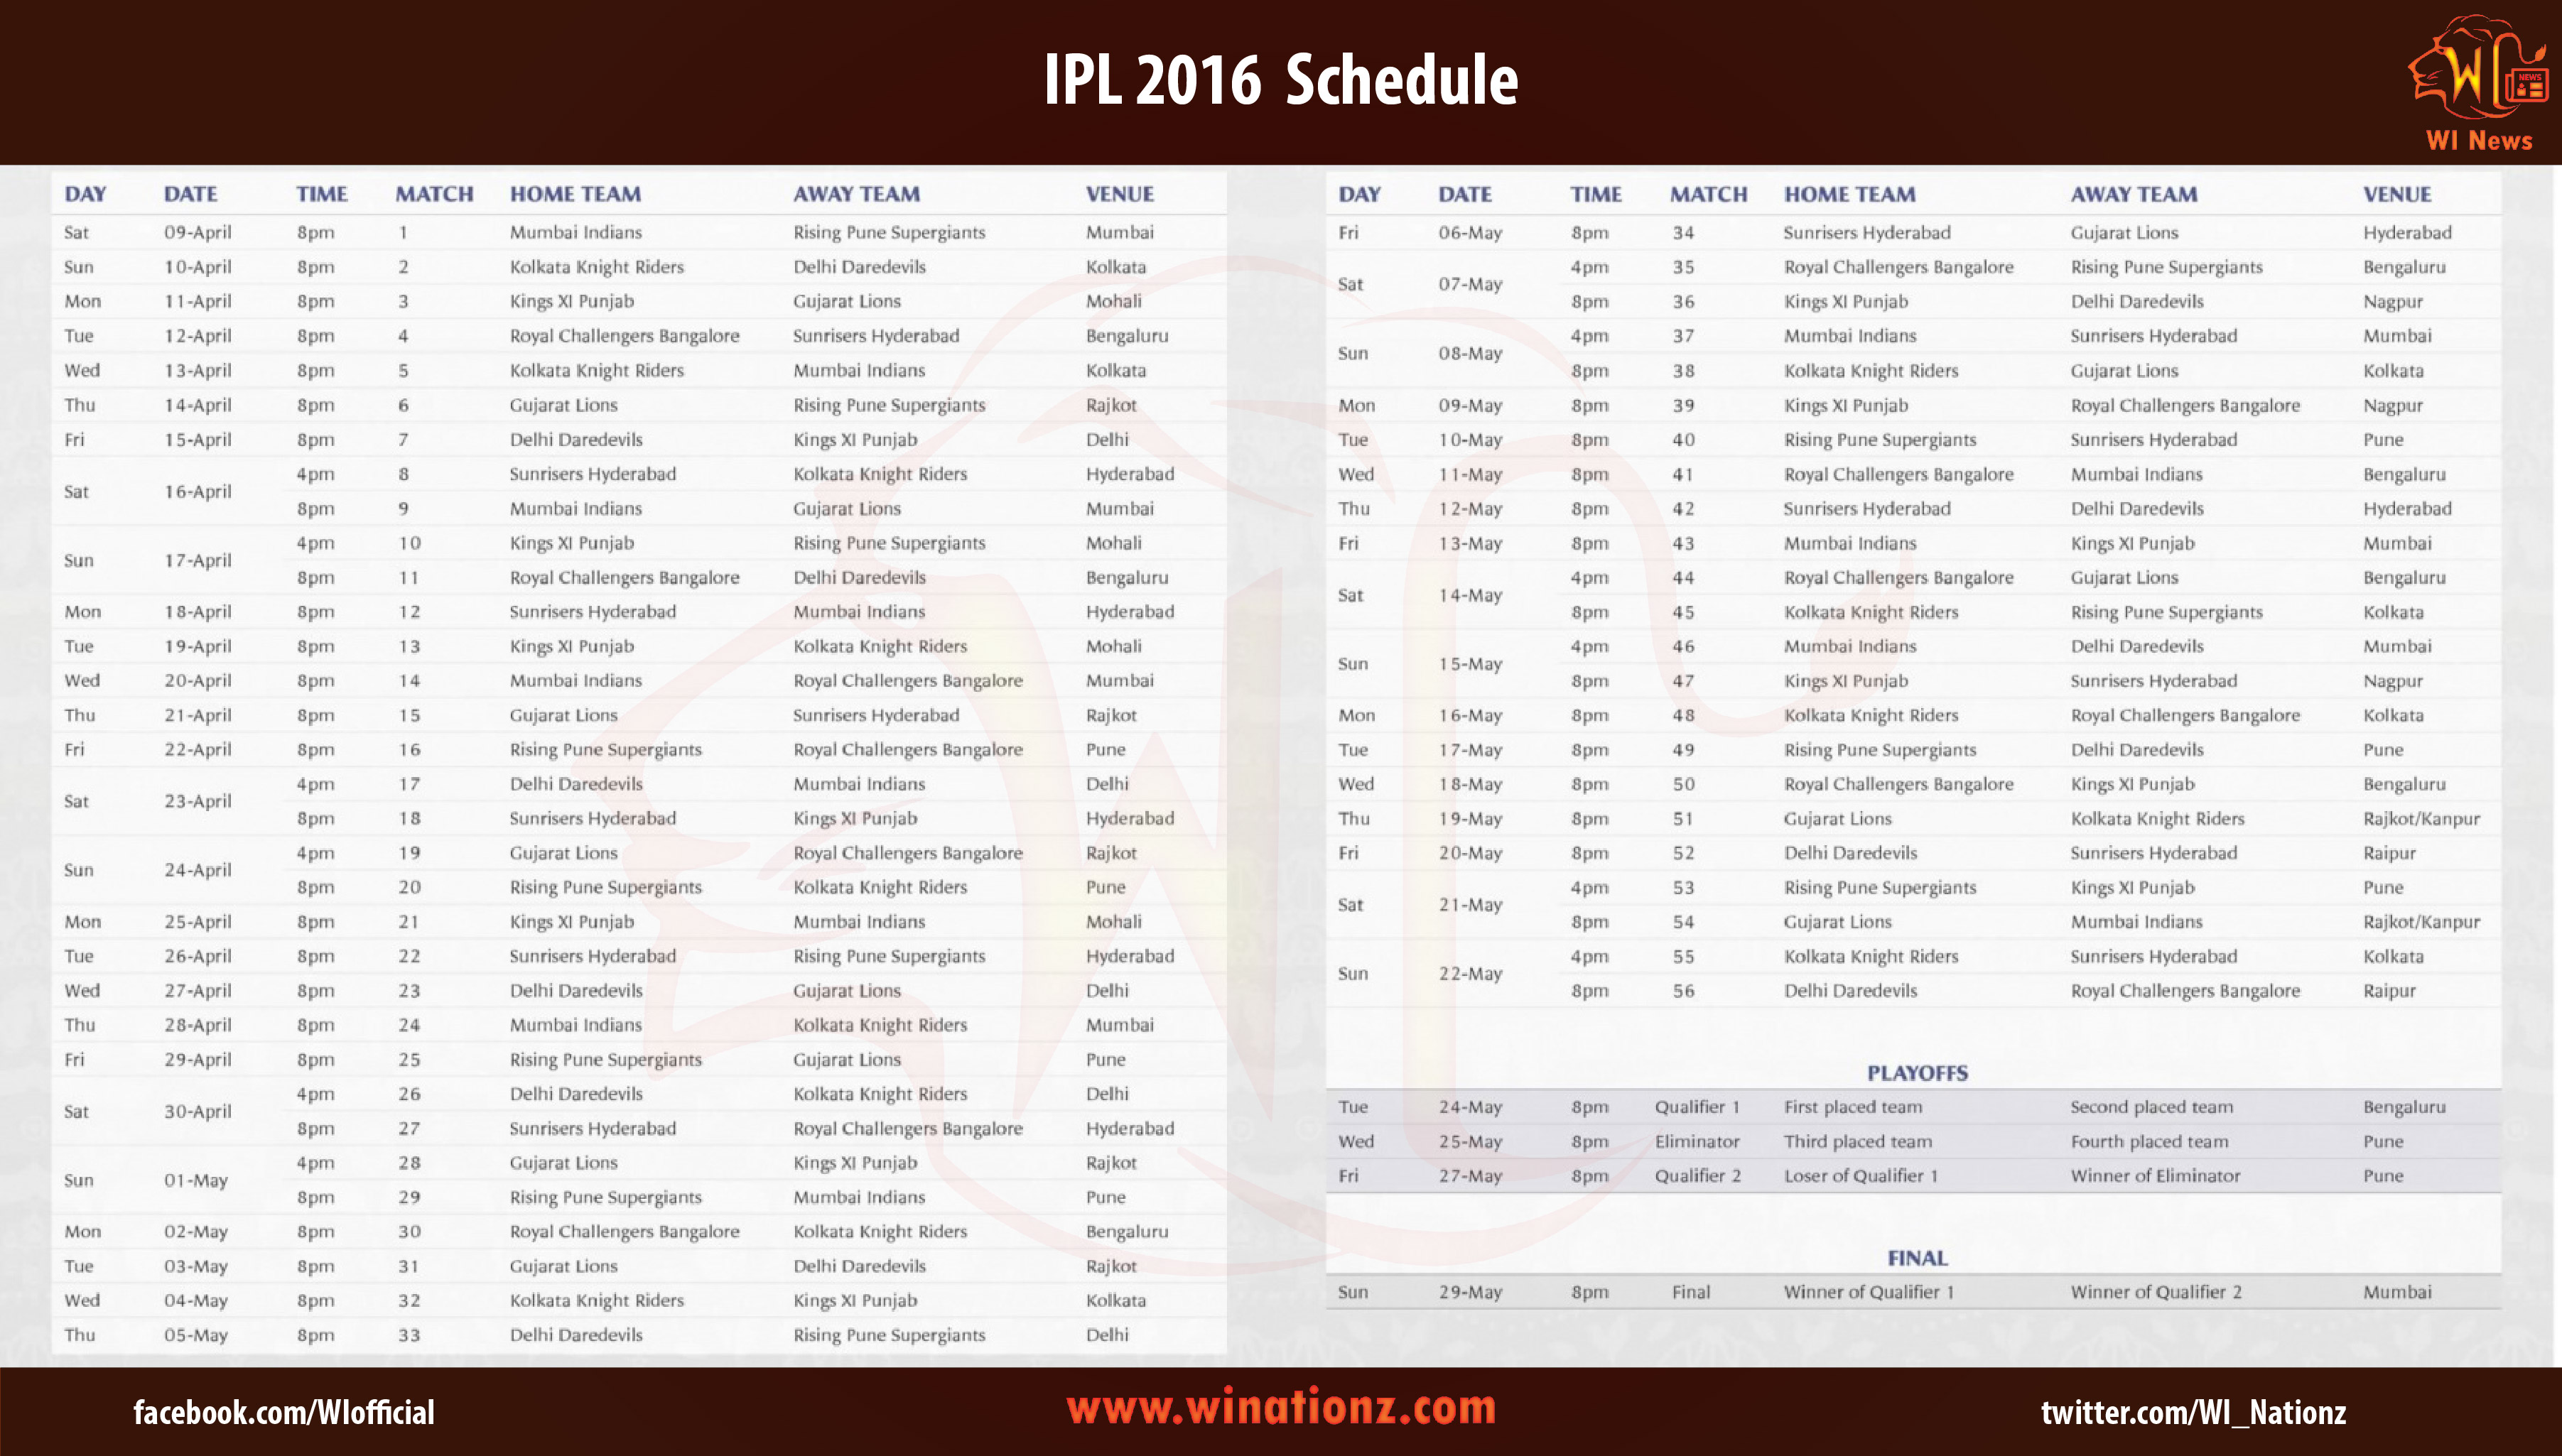 IPL 2019 Schedule PDF Free Download Excel Time Table 5 560 Users